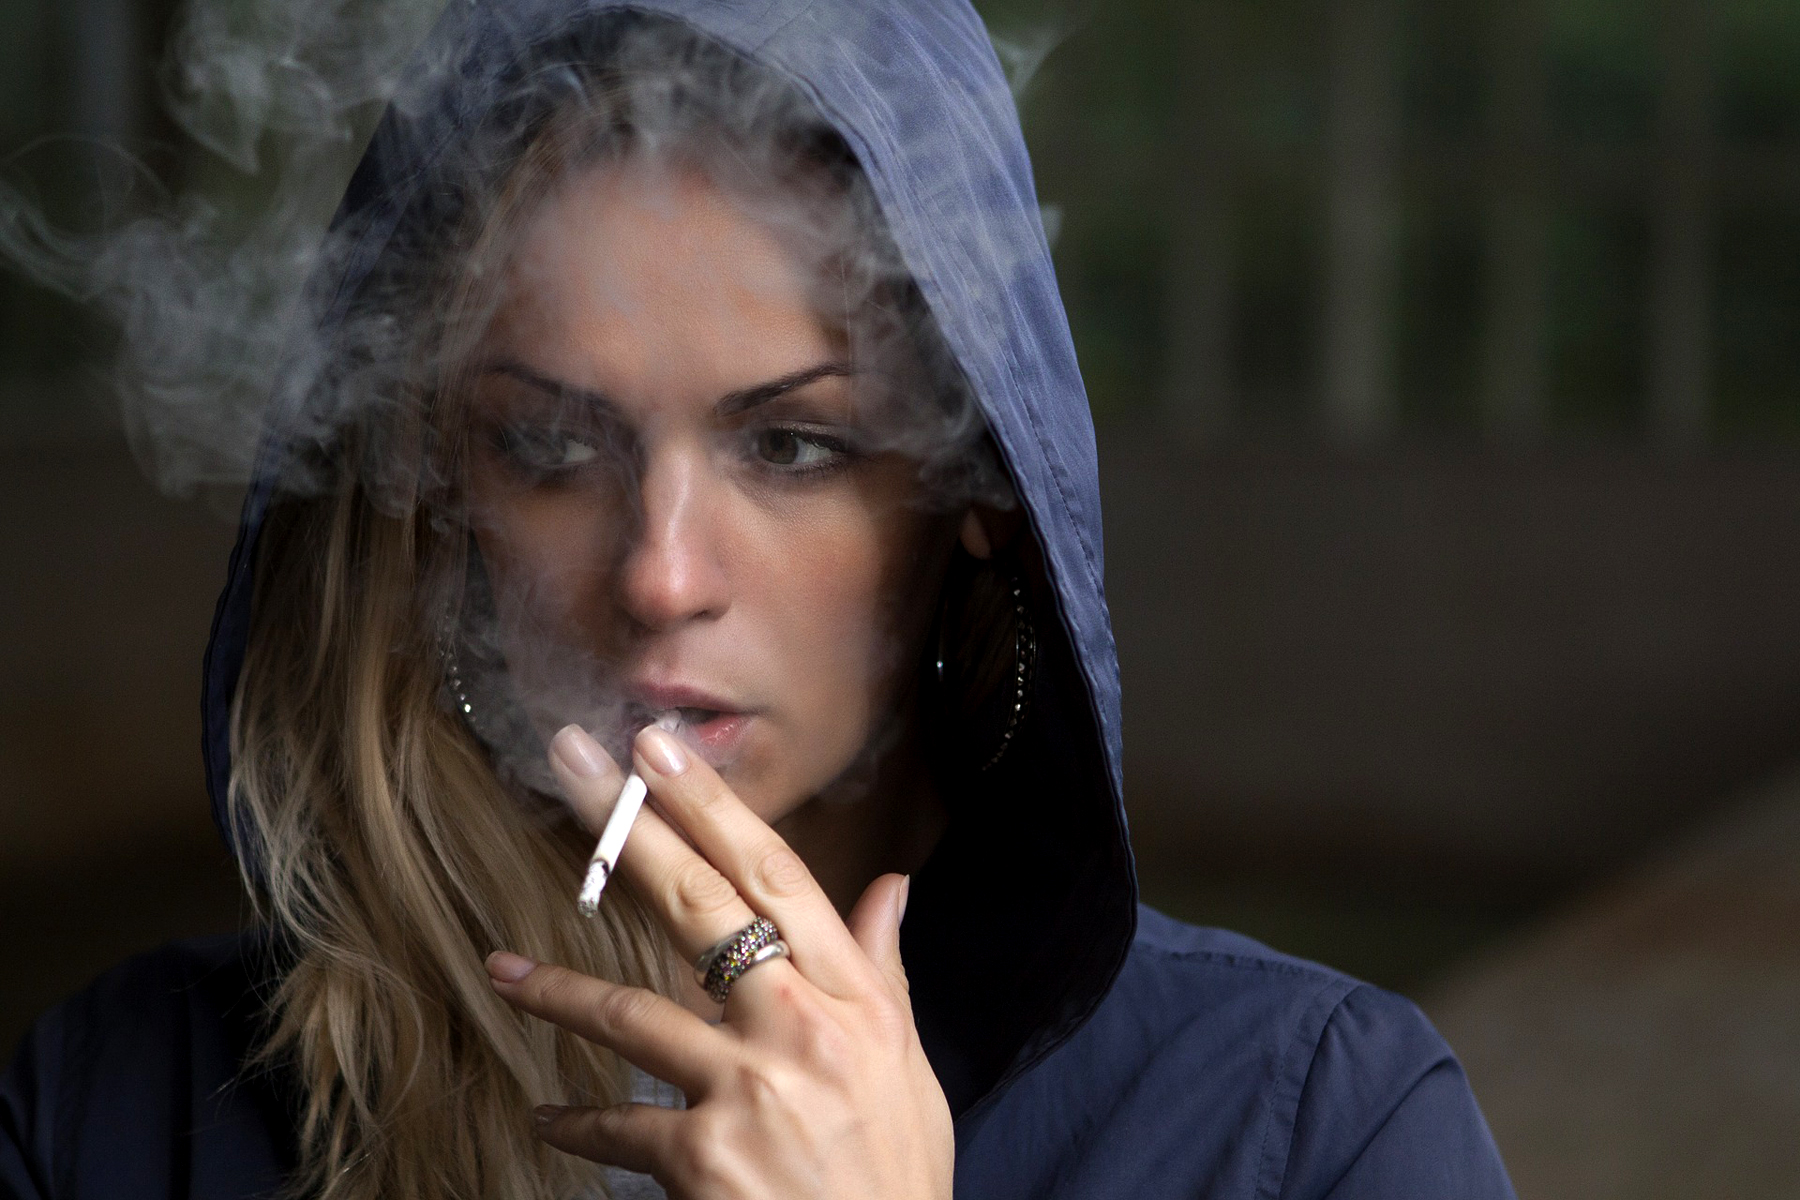 Mariniranje woman smoke